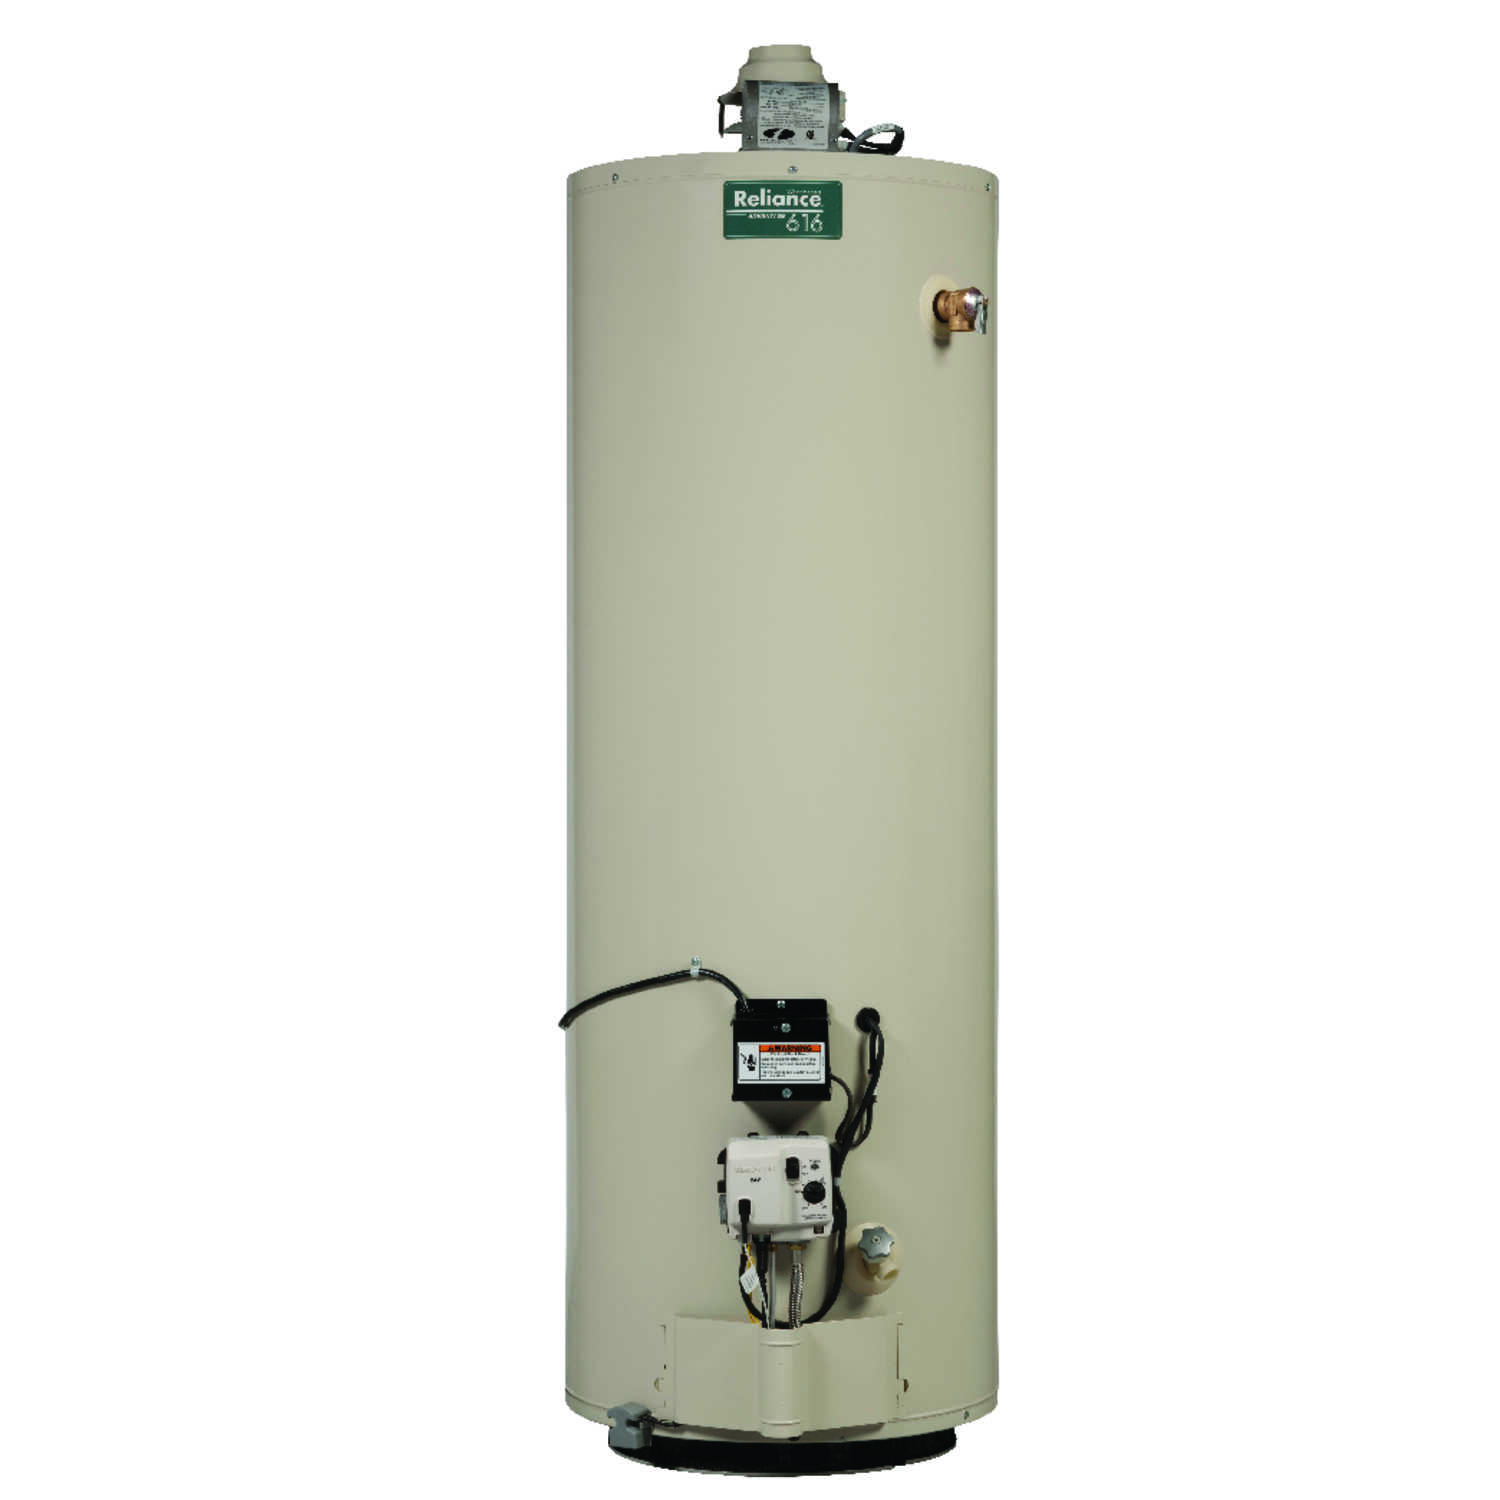 Reliance  Water Heater  Natural Gas  40 gal.